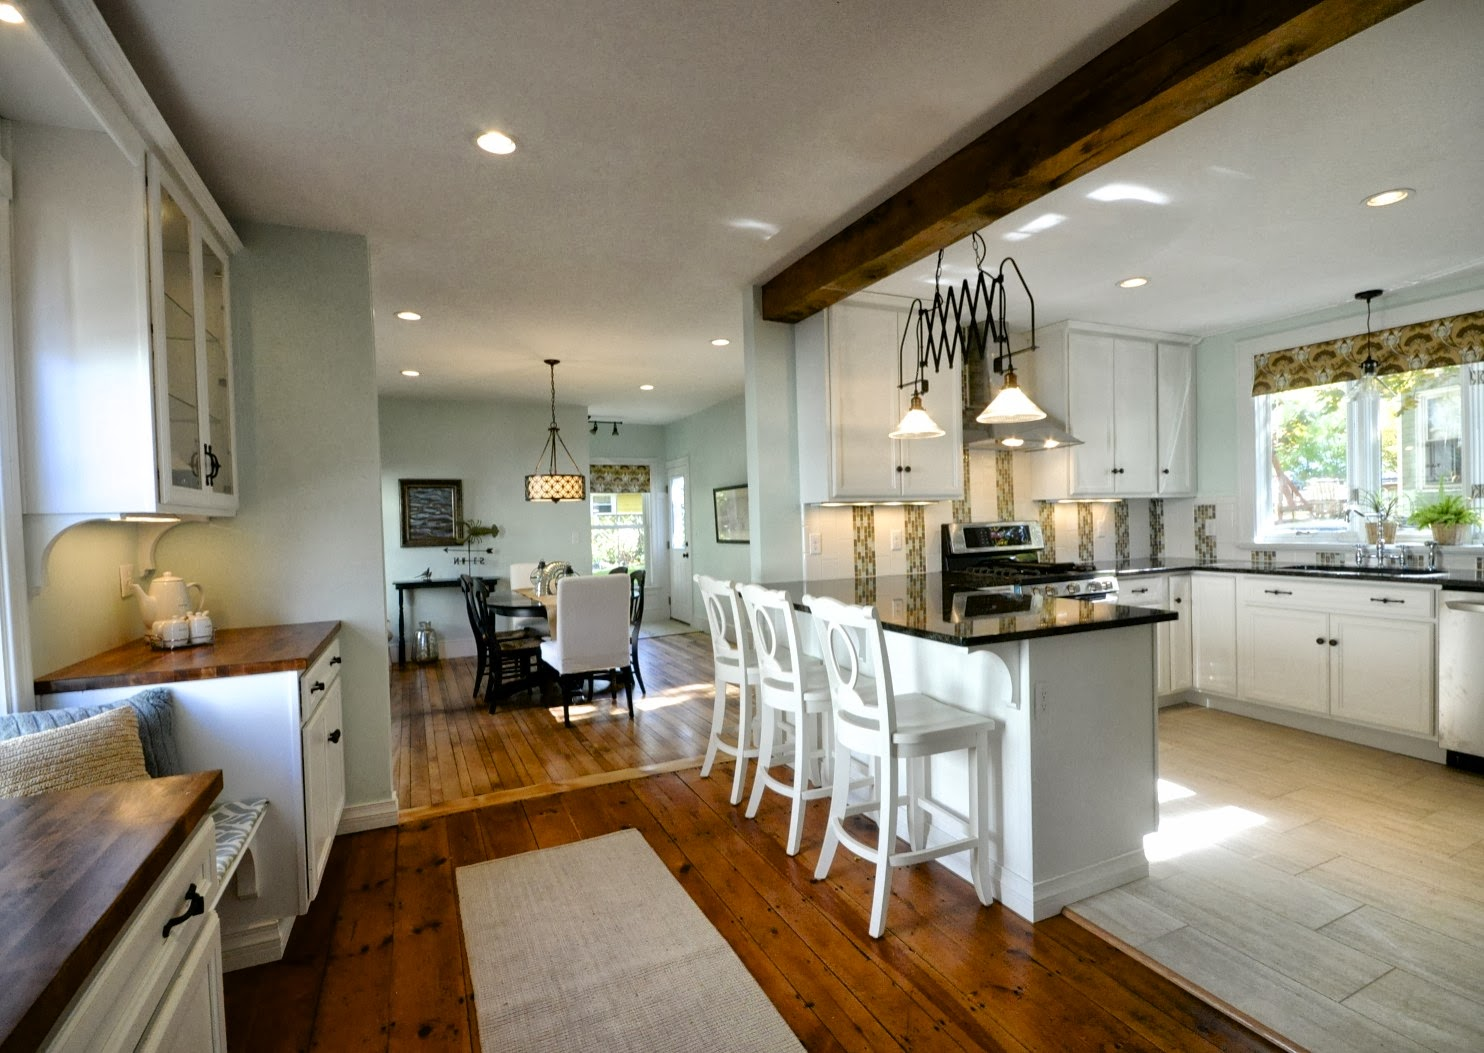 Create An Open Kitchen And Dining Area | SoPo Cottage Featured On  Remodelaholic.com #